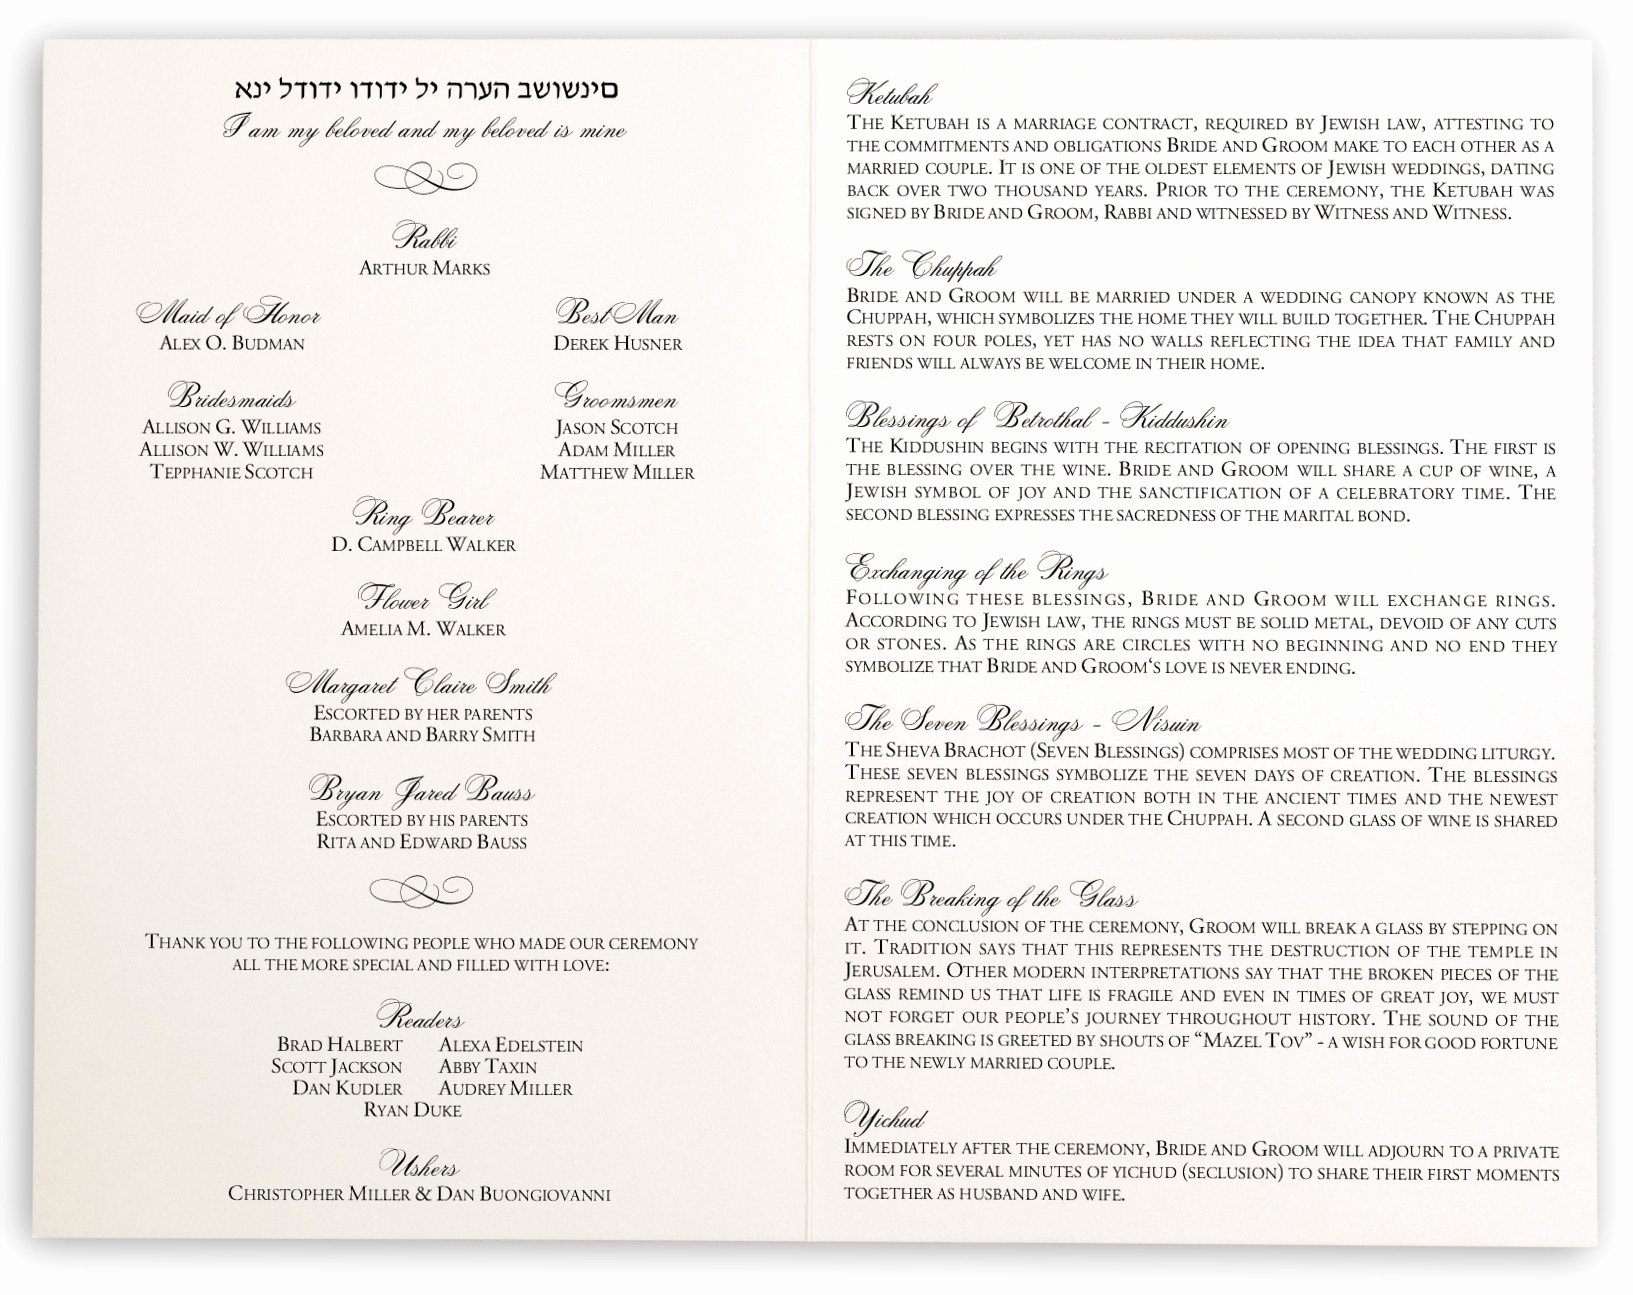 Me She Barach Jewish Wedding Programs and Jewish Program